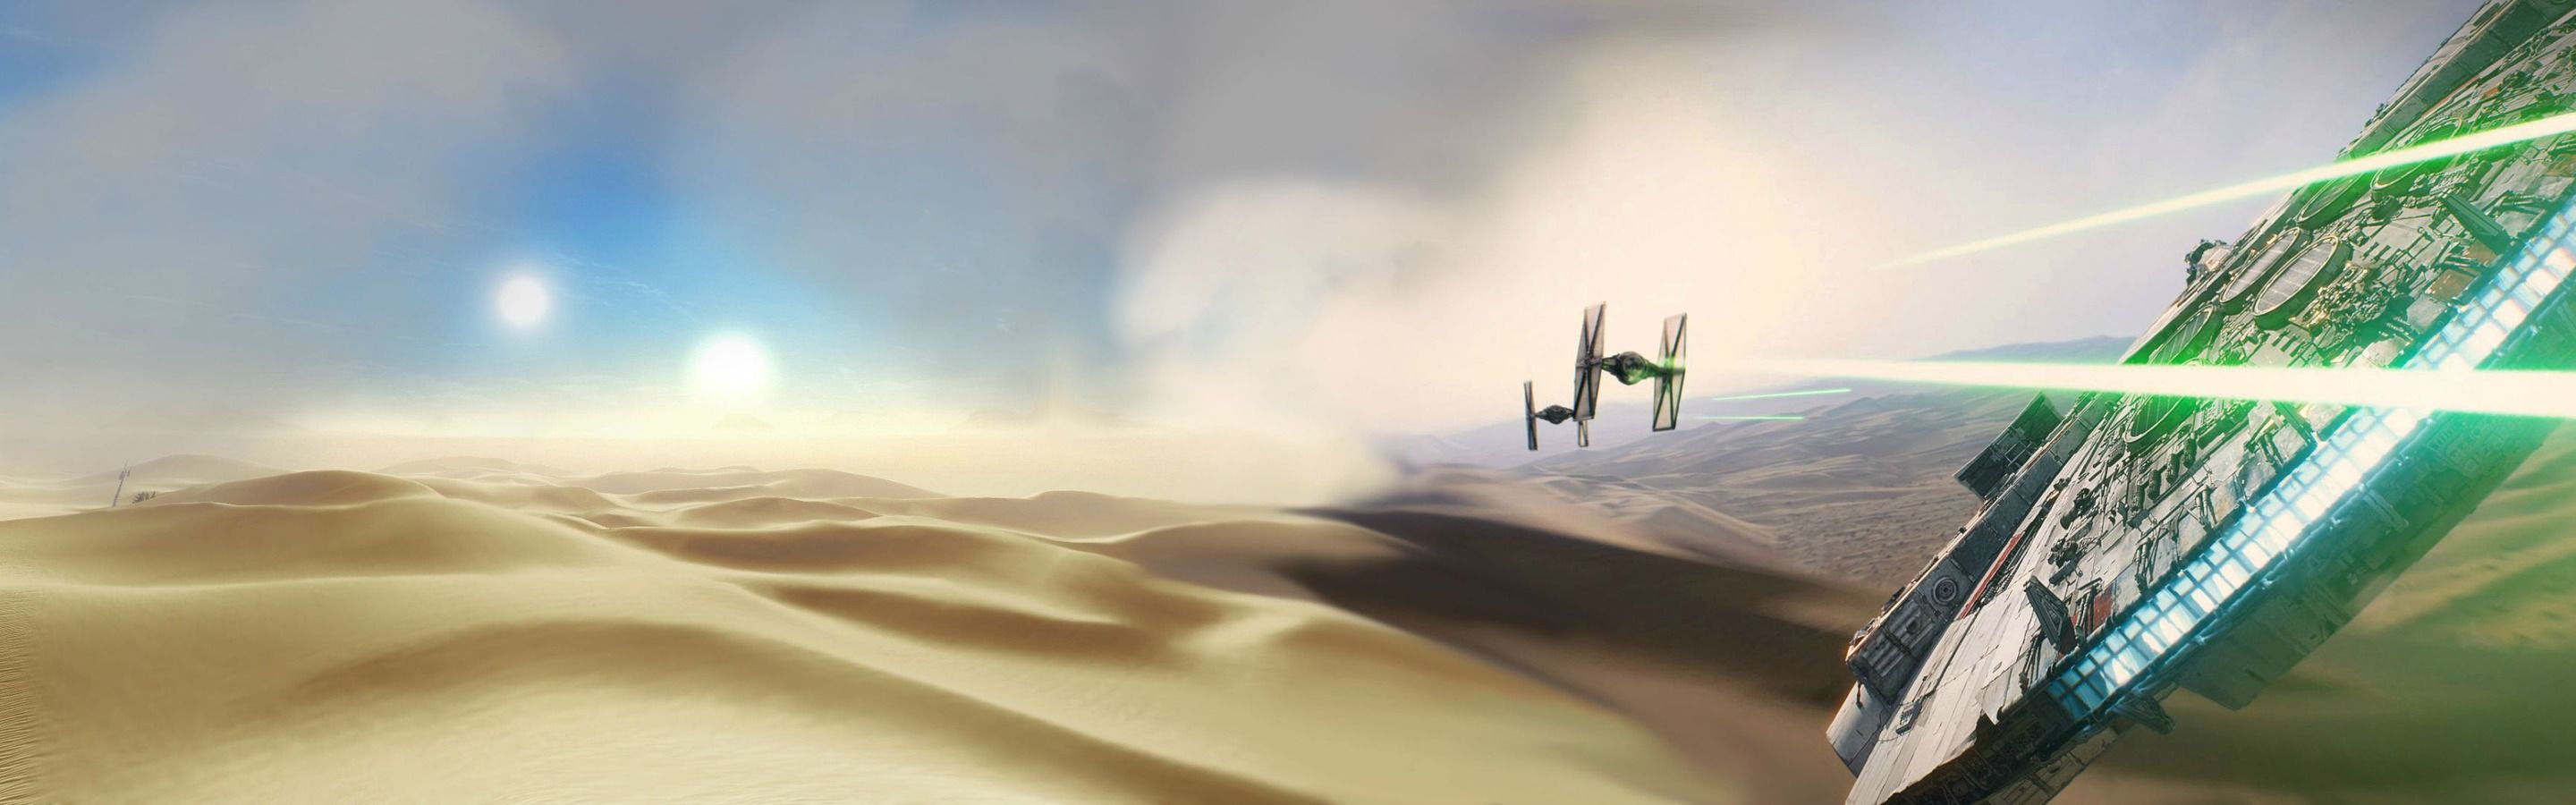 Star Wars Dual Screen Wallpapers Top Free Star Wars Dual Screen Backgrounds Wallpaperaccess